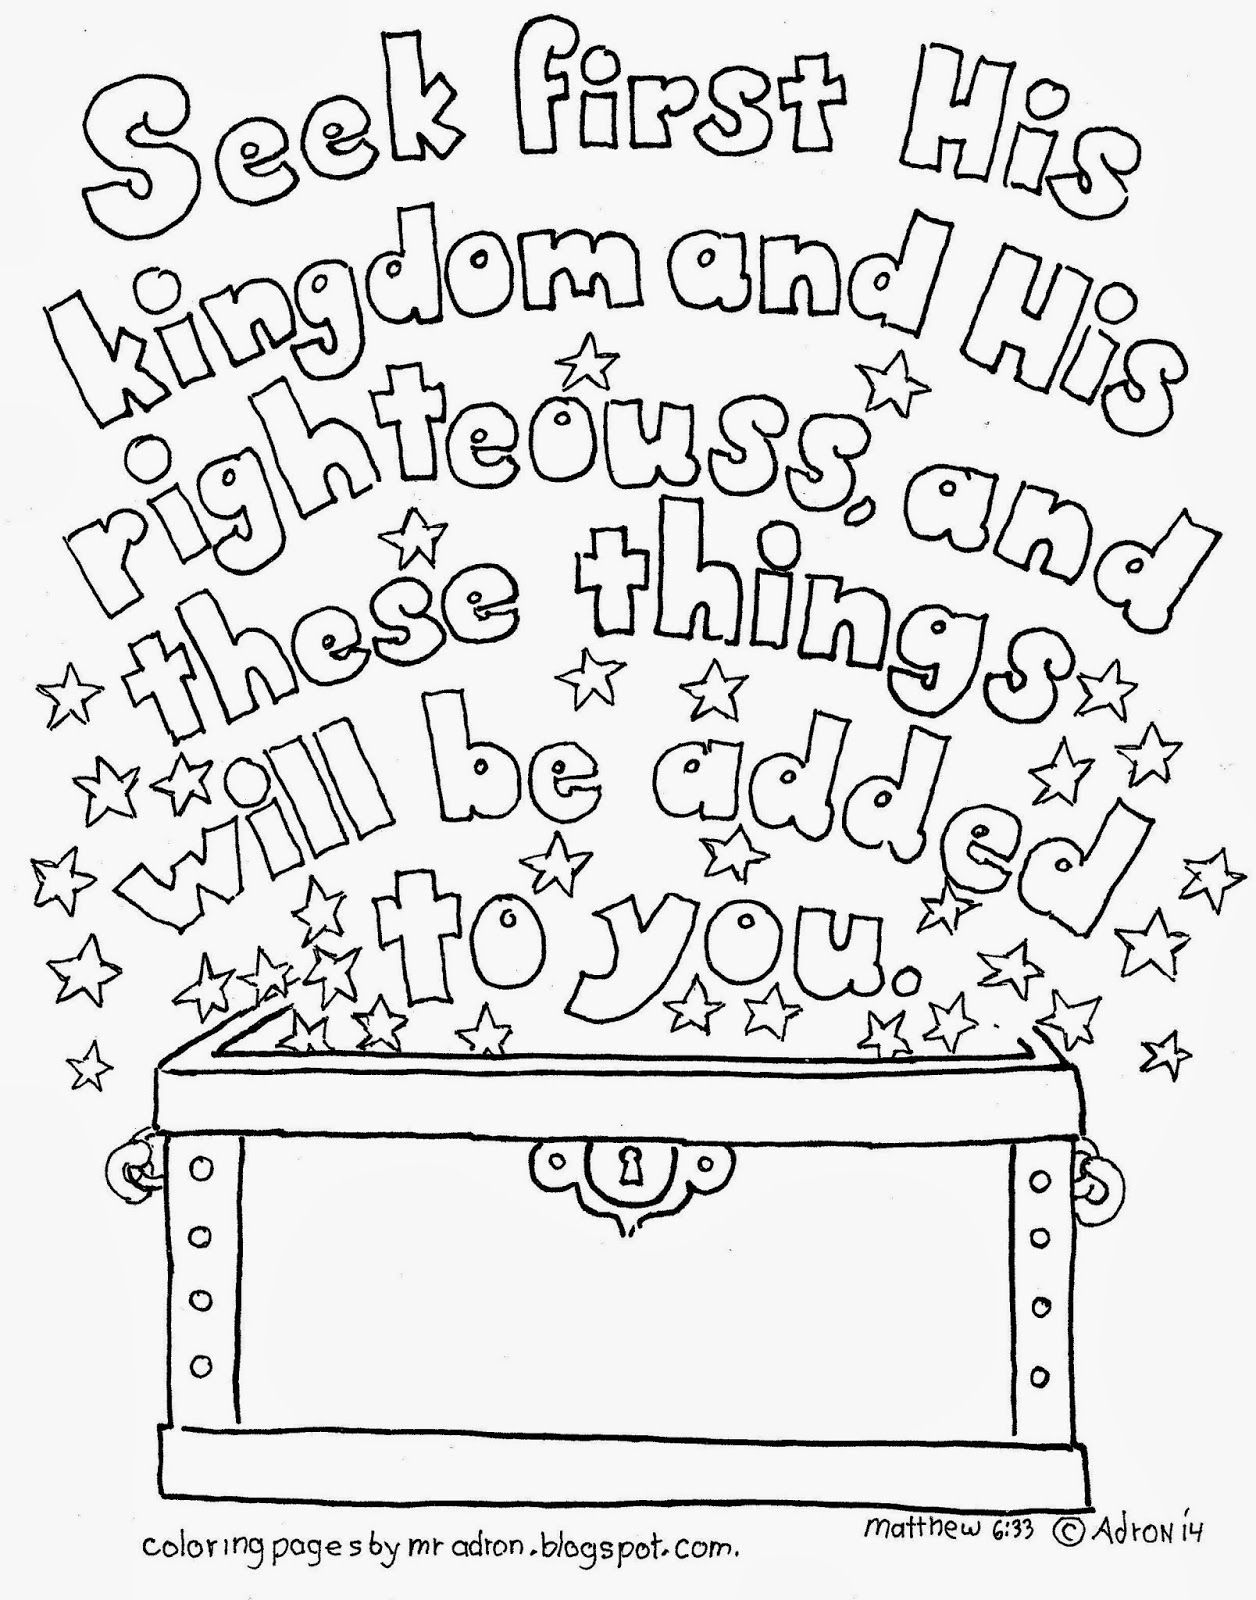 Free printable coloring pages with bible verses - Matthew 6 33 Printable Coloring Page Scripture Doodles Where You Have To Colour In